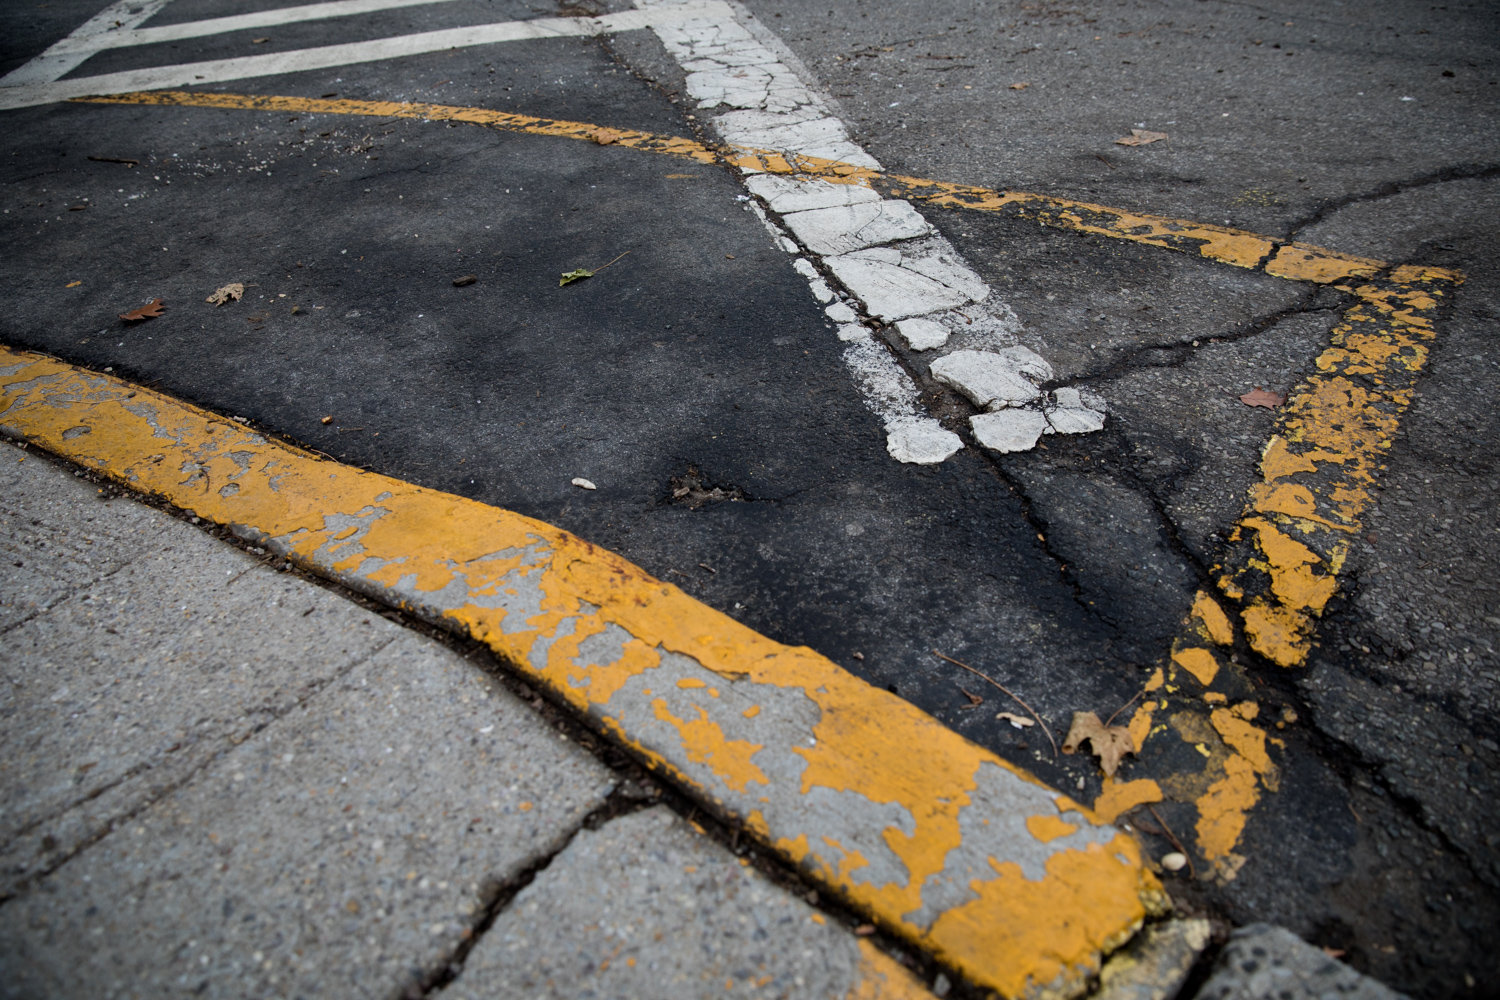 Yellow markings at a crosswalk along Arlington Avenue indicate where cars should not park.